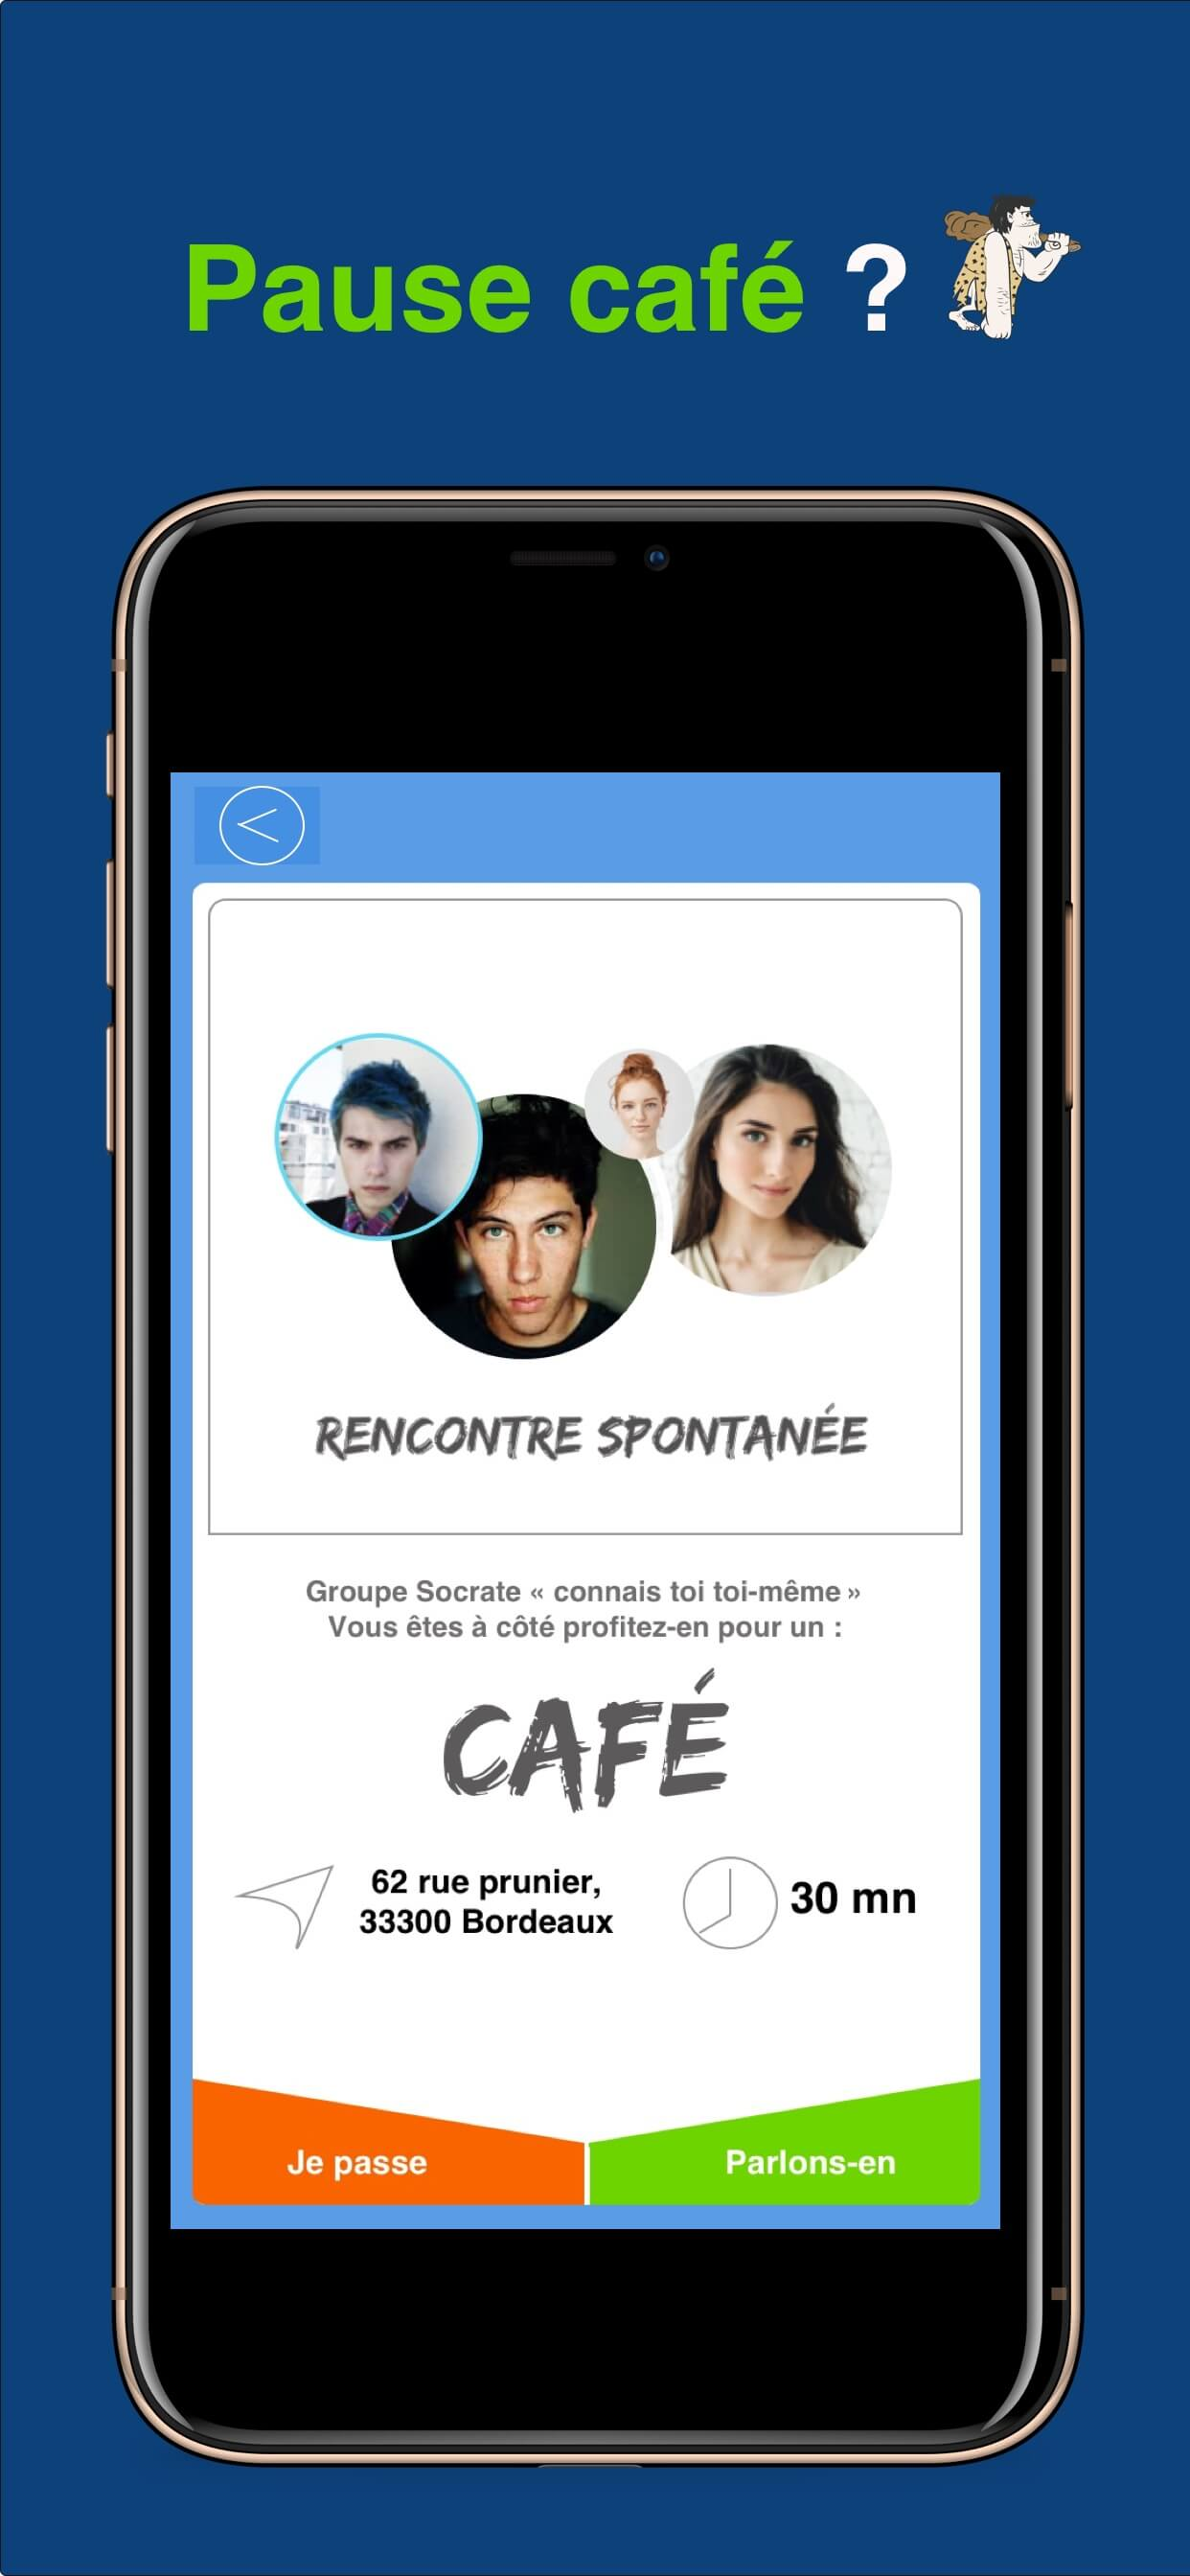 elyot-application-ios-iphone-freelance-bordeaux-jeremy-peltier-6